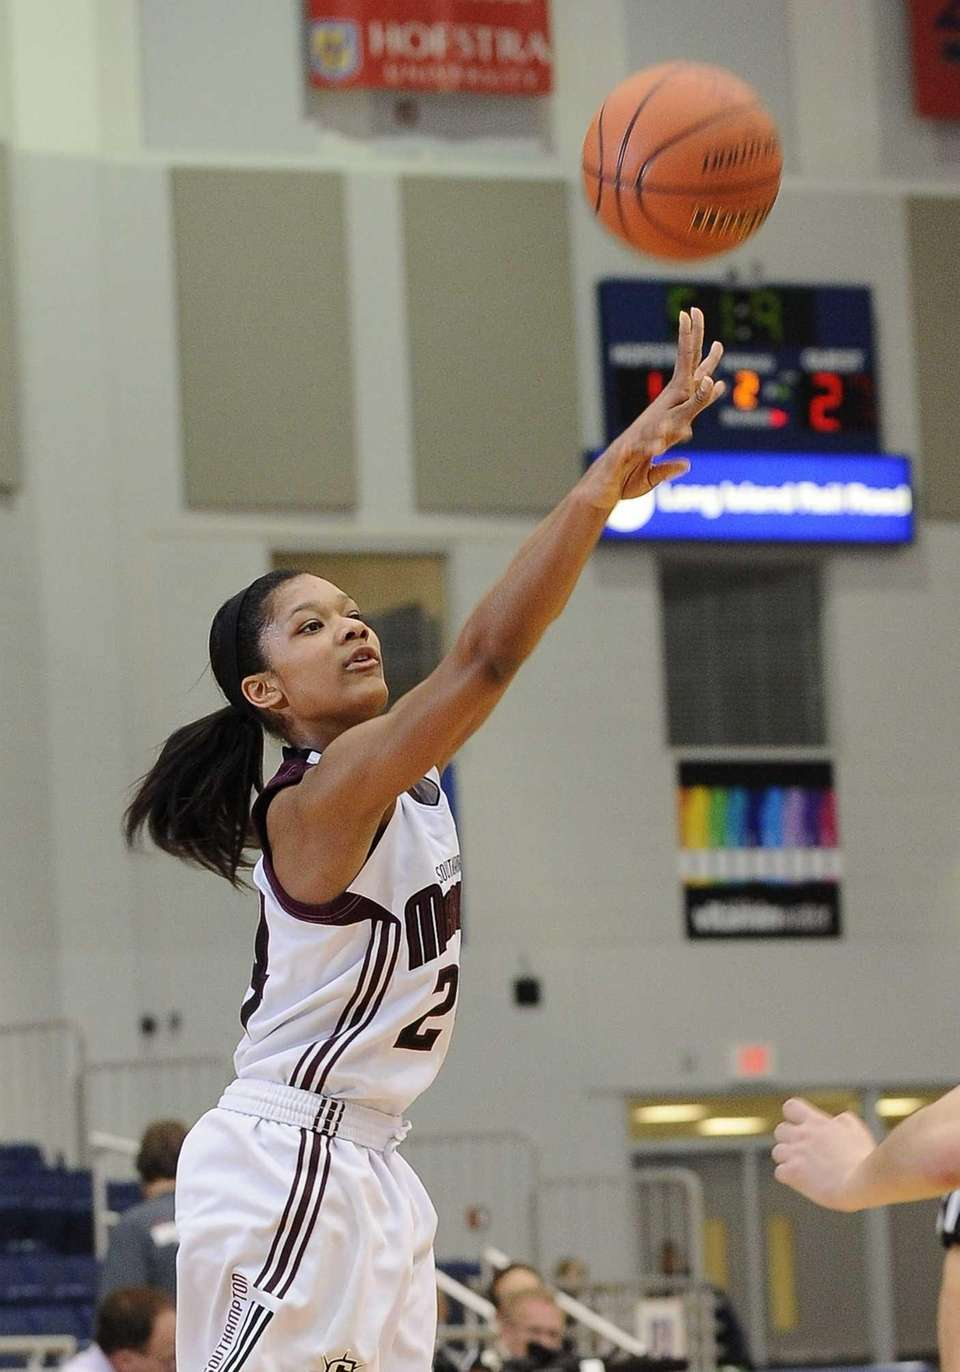 Southampton's Paris Hodges sinks a three-point shot against